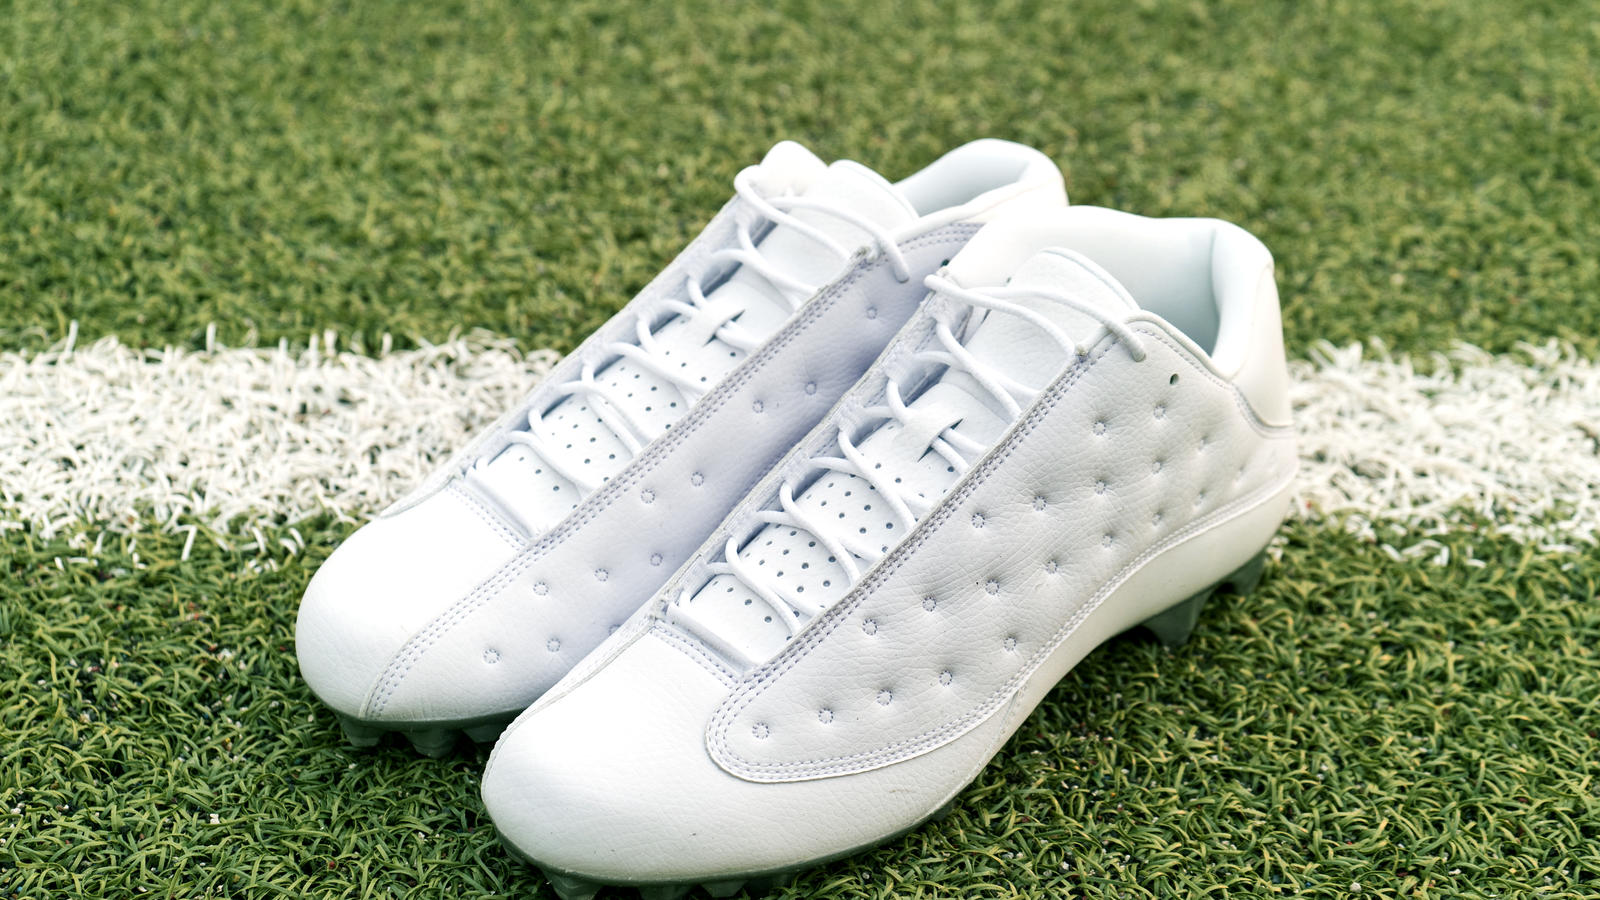 Jordan Brand's Football Roster Debuts New Air Jordan XIII PE Cleats 2